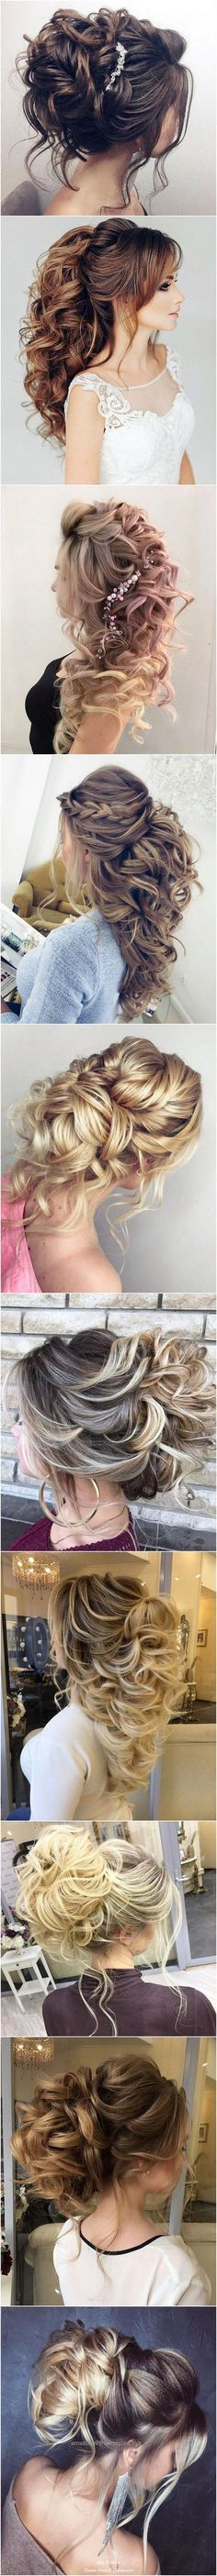 Perfect Elstile Long Wedding Hairstyle Inspiration /  www.deerpearlflow…   The post  Elstile Long Wedding Hairstyle Inspiration / www.deerpearlflow……  appeared first on  Amazing Hairstyles .